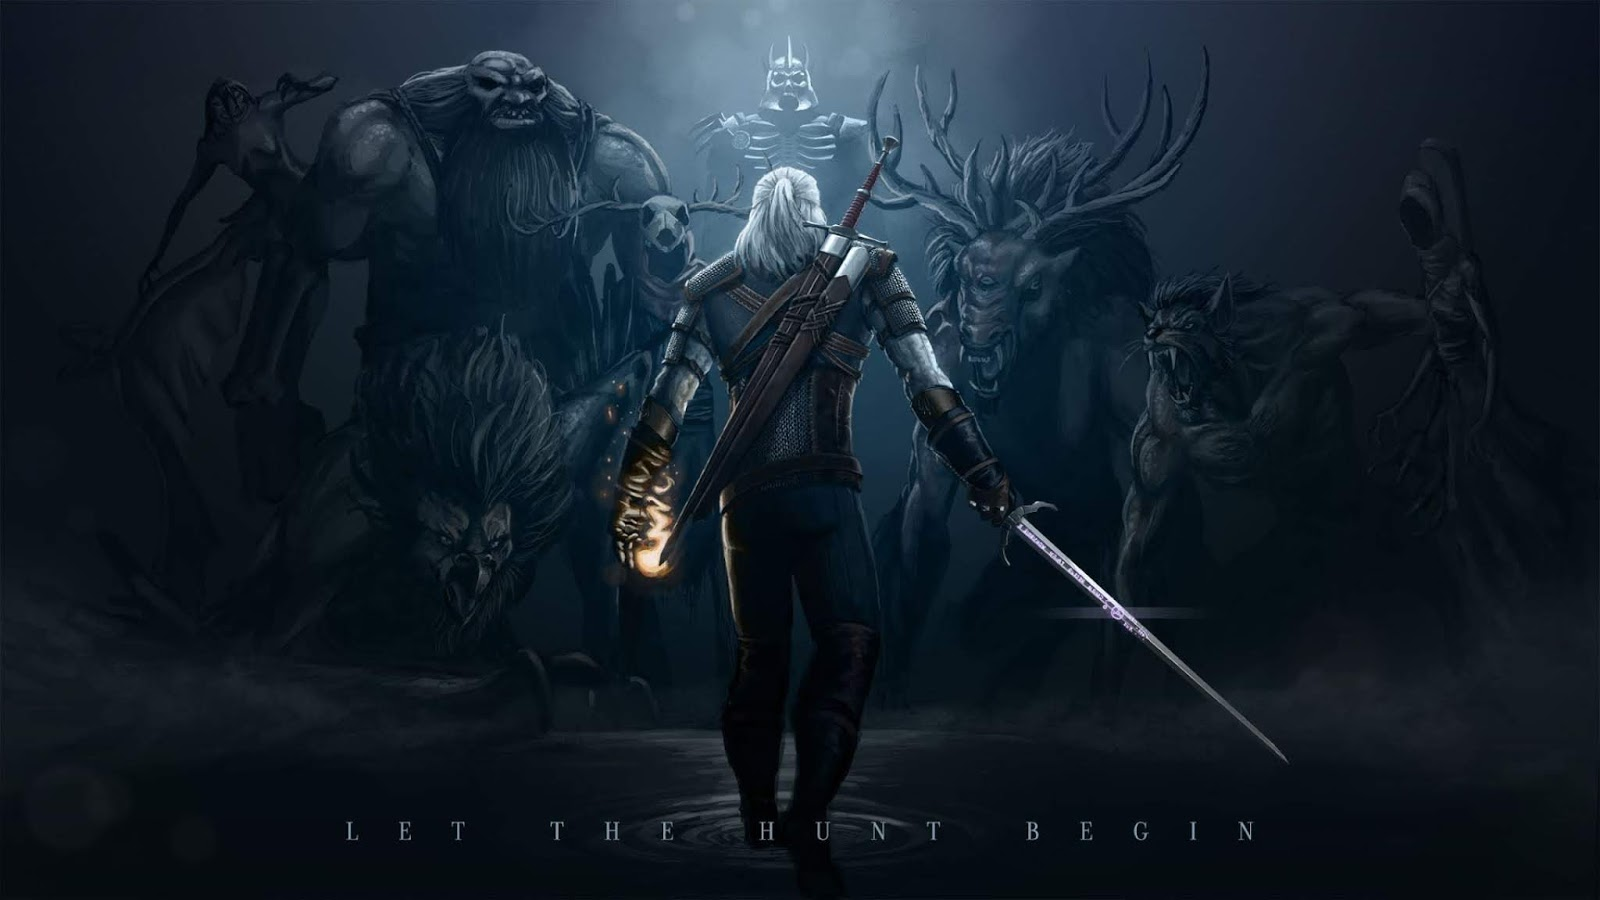 Witcher-wallpaper-for-iPhone-hd-download